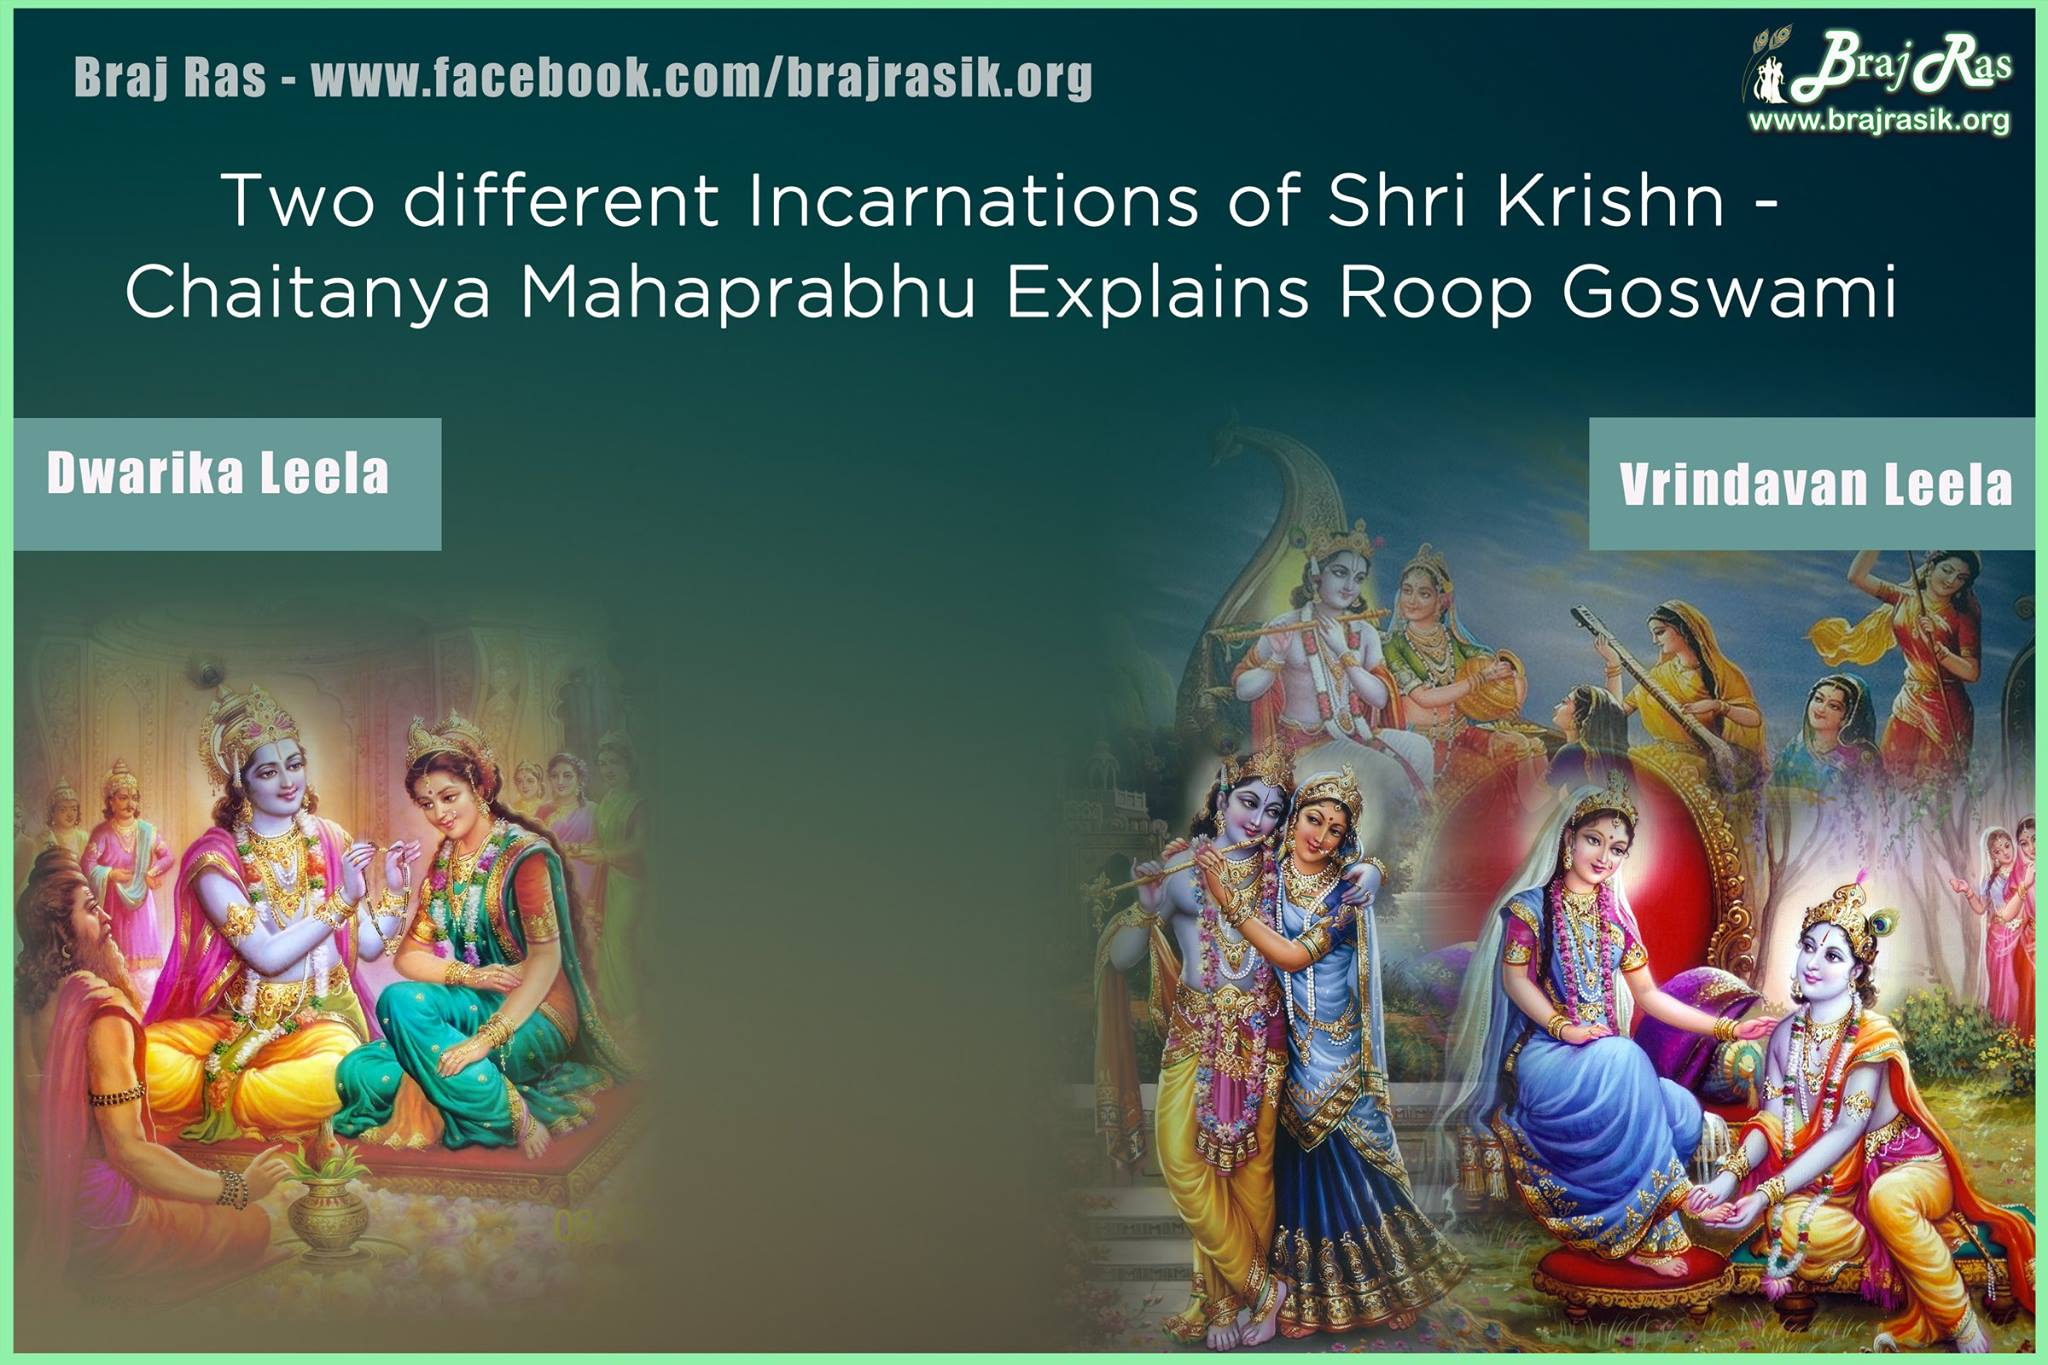 Two different Incarnations of Shri Krishn - Chaitanya Mahaprabhu Explains Roop Goswami